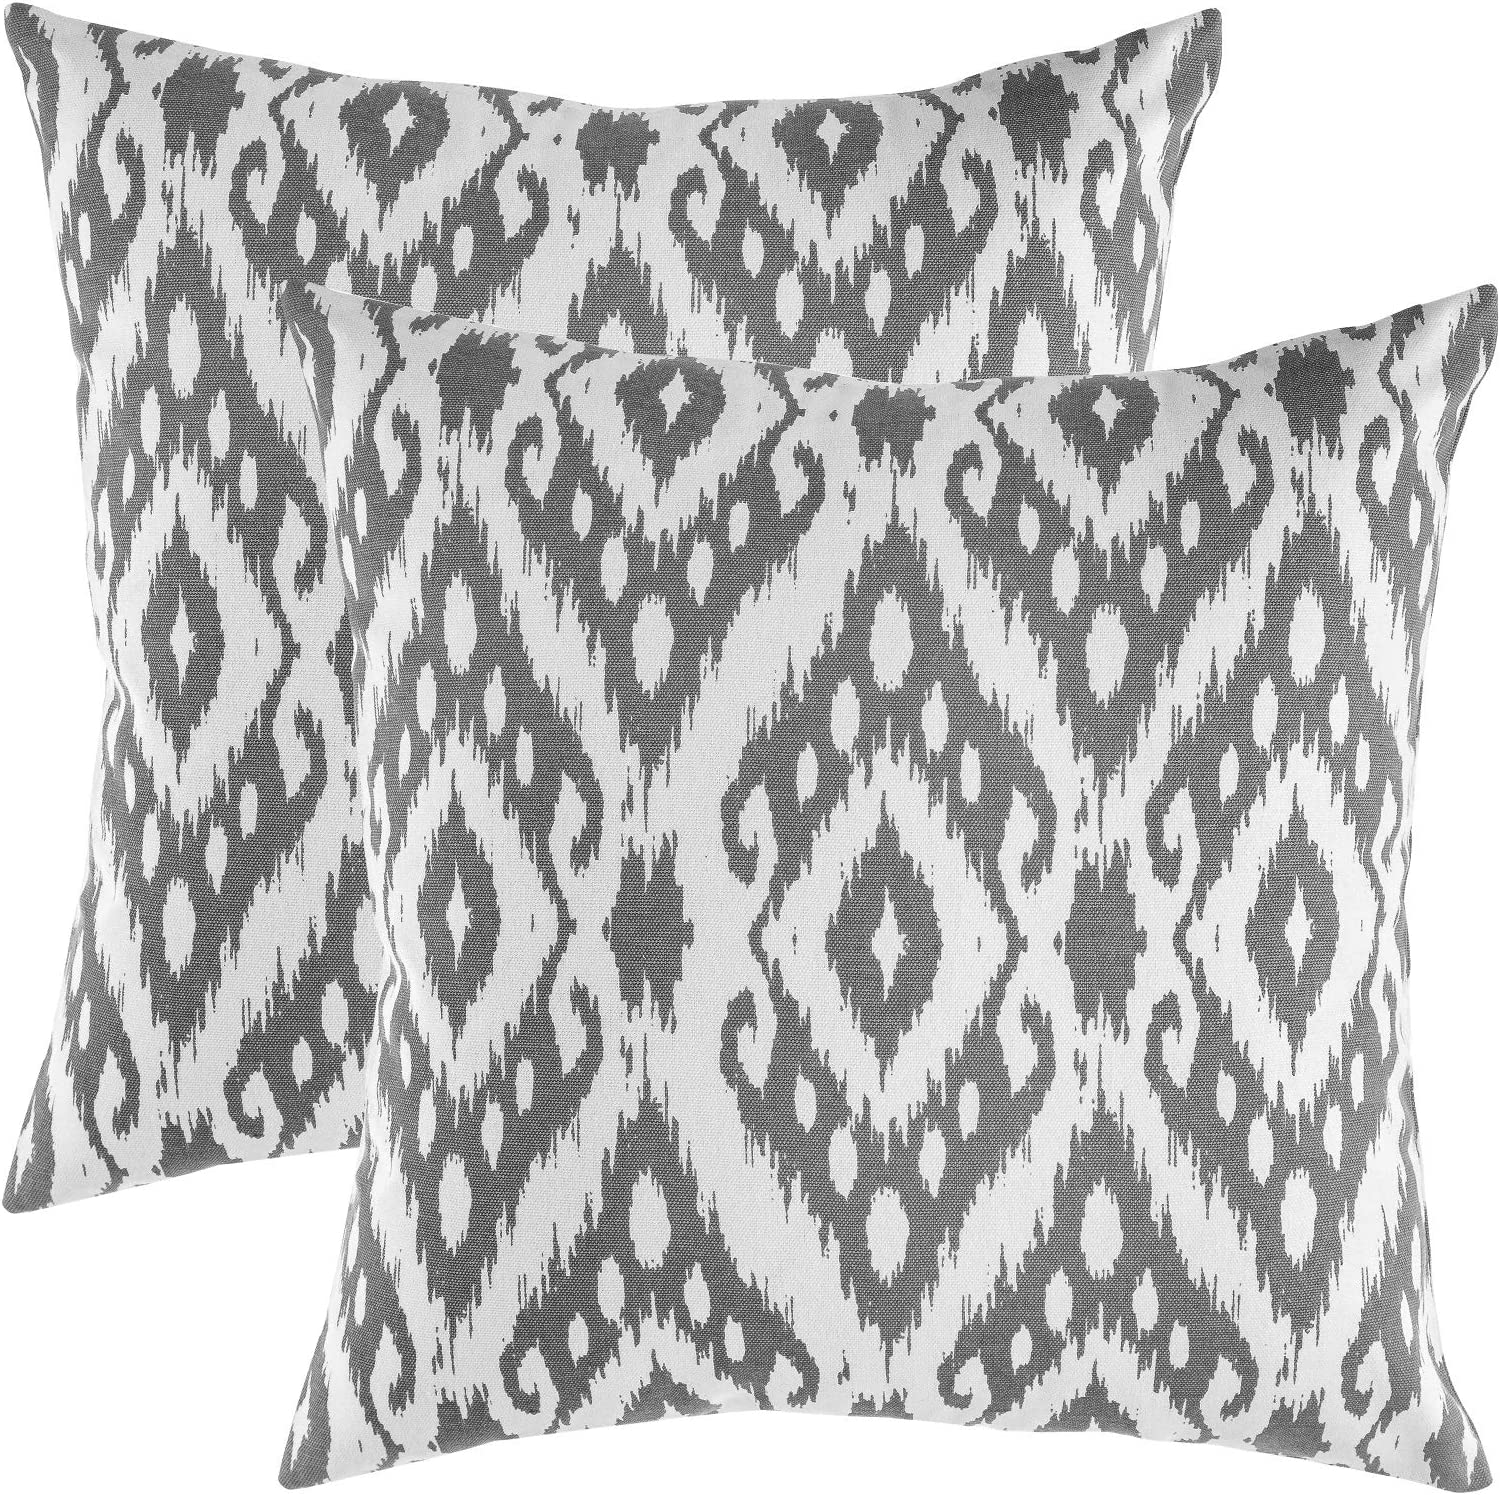 TreeWool (Pack of 2 Decorative Throw Pillow Covers Ogee Diamond Accent 100% Cotton Cushion Shams Cases (18 x 18 Inches / 45 x 45 cm; Graphite Grey)